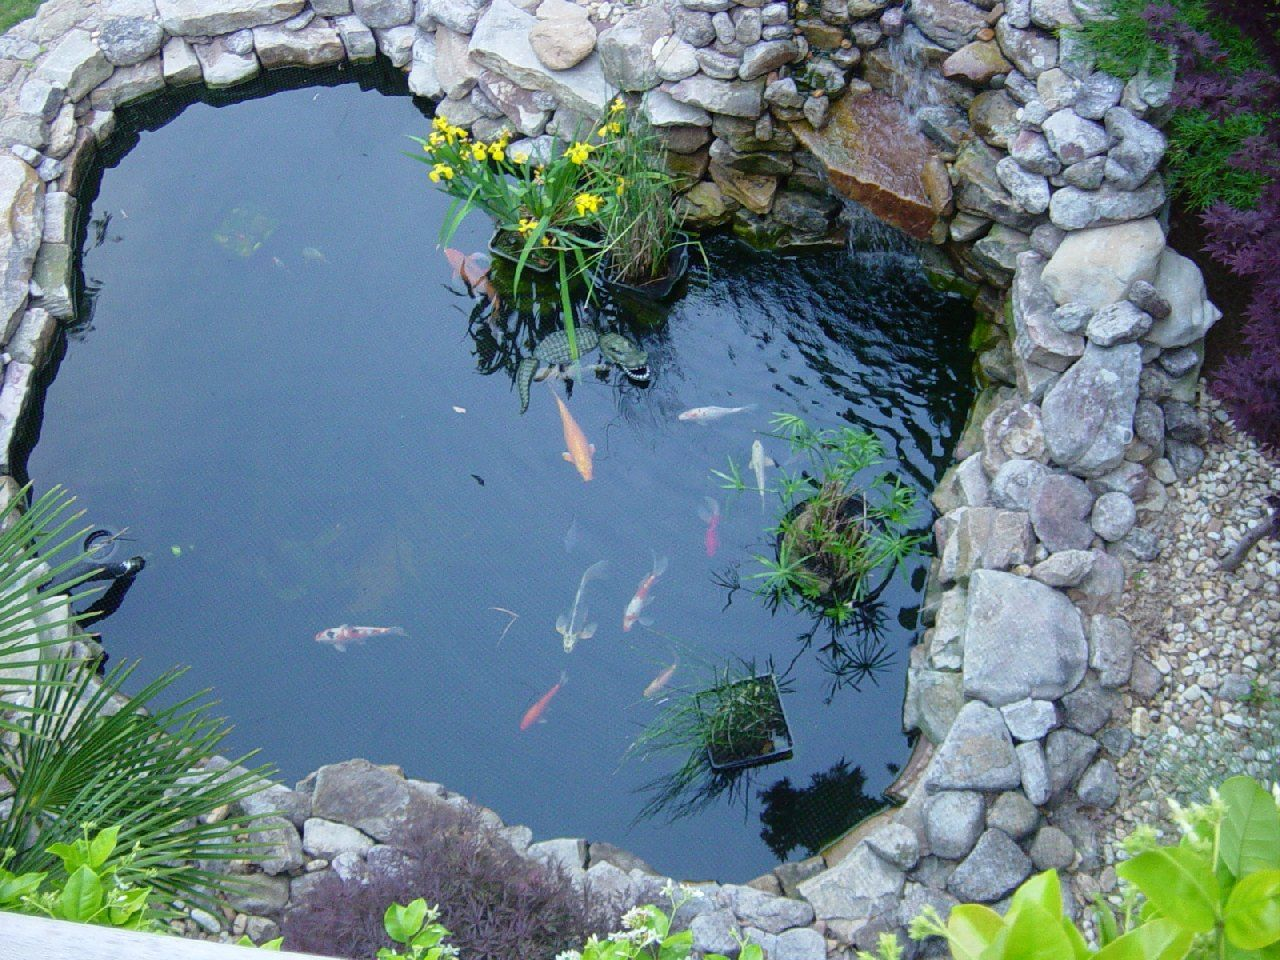 20 koi pond ideas to create a unique garden koi for Koi fish pond ideas